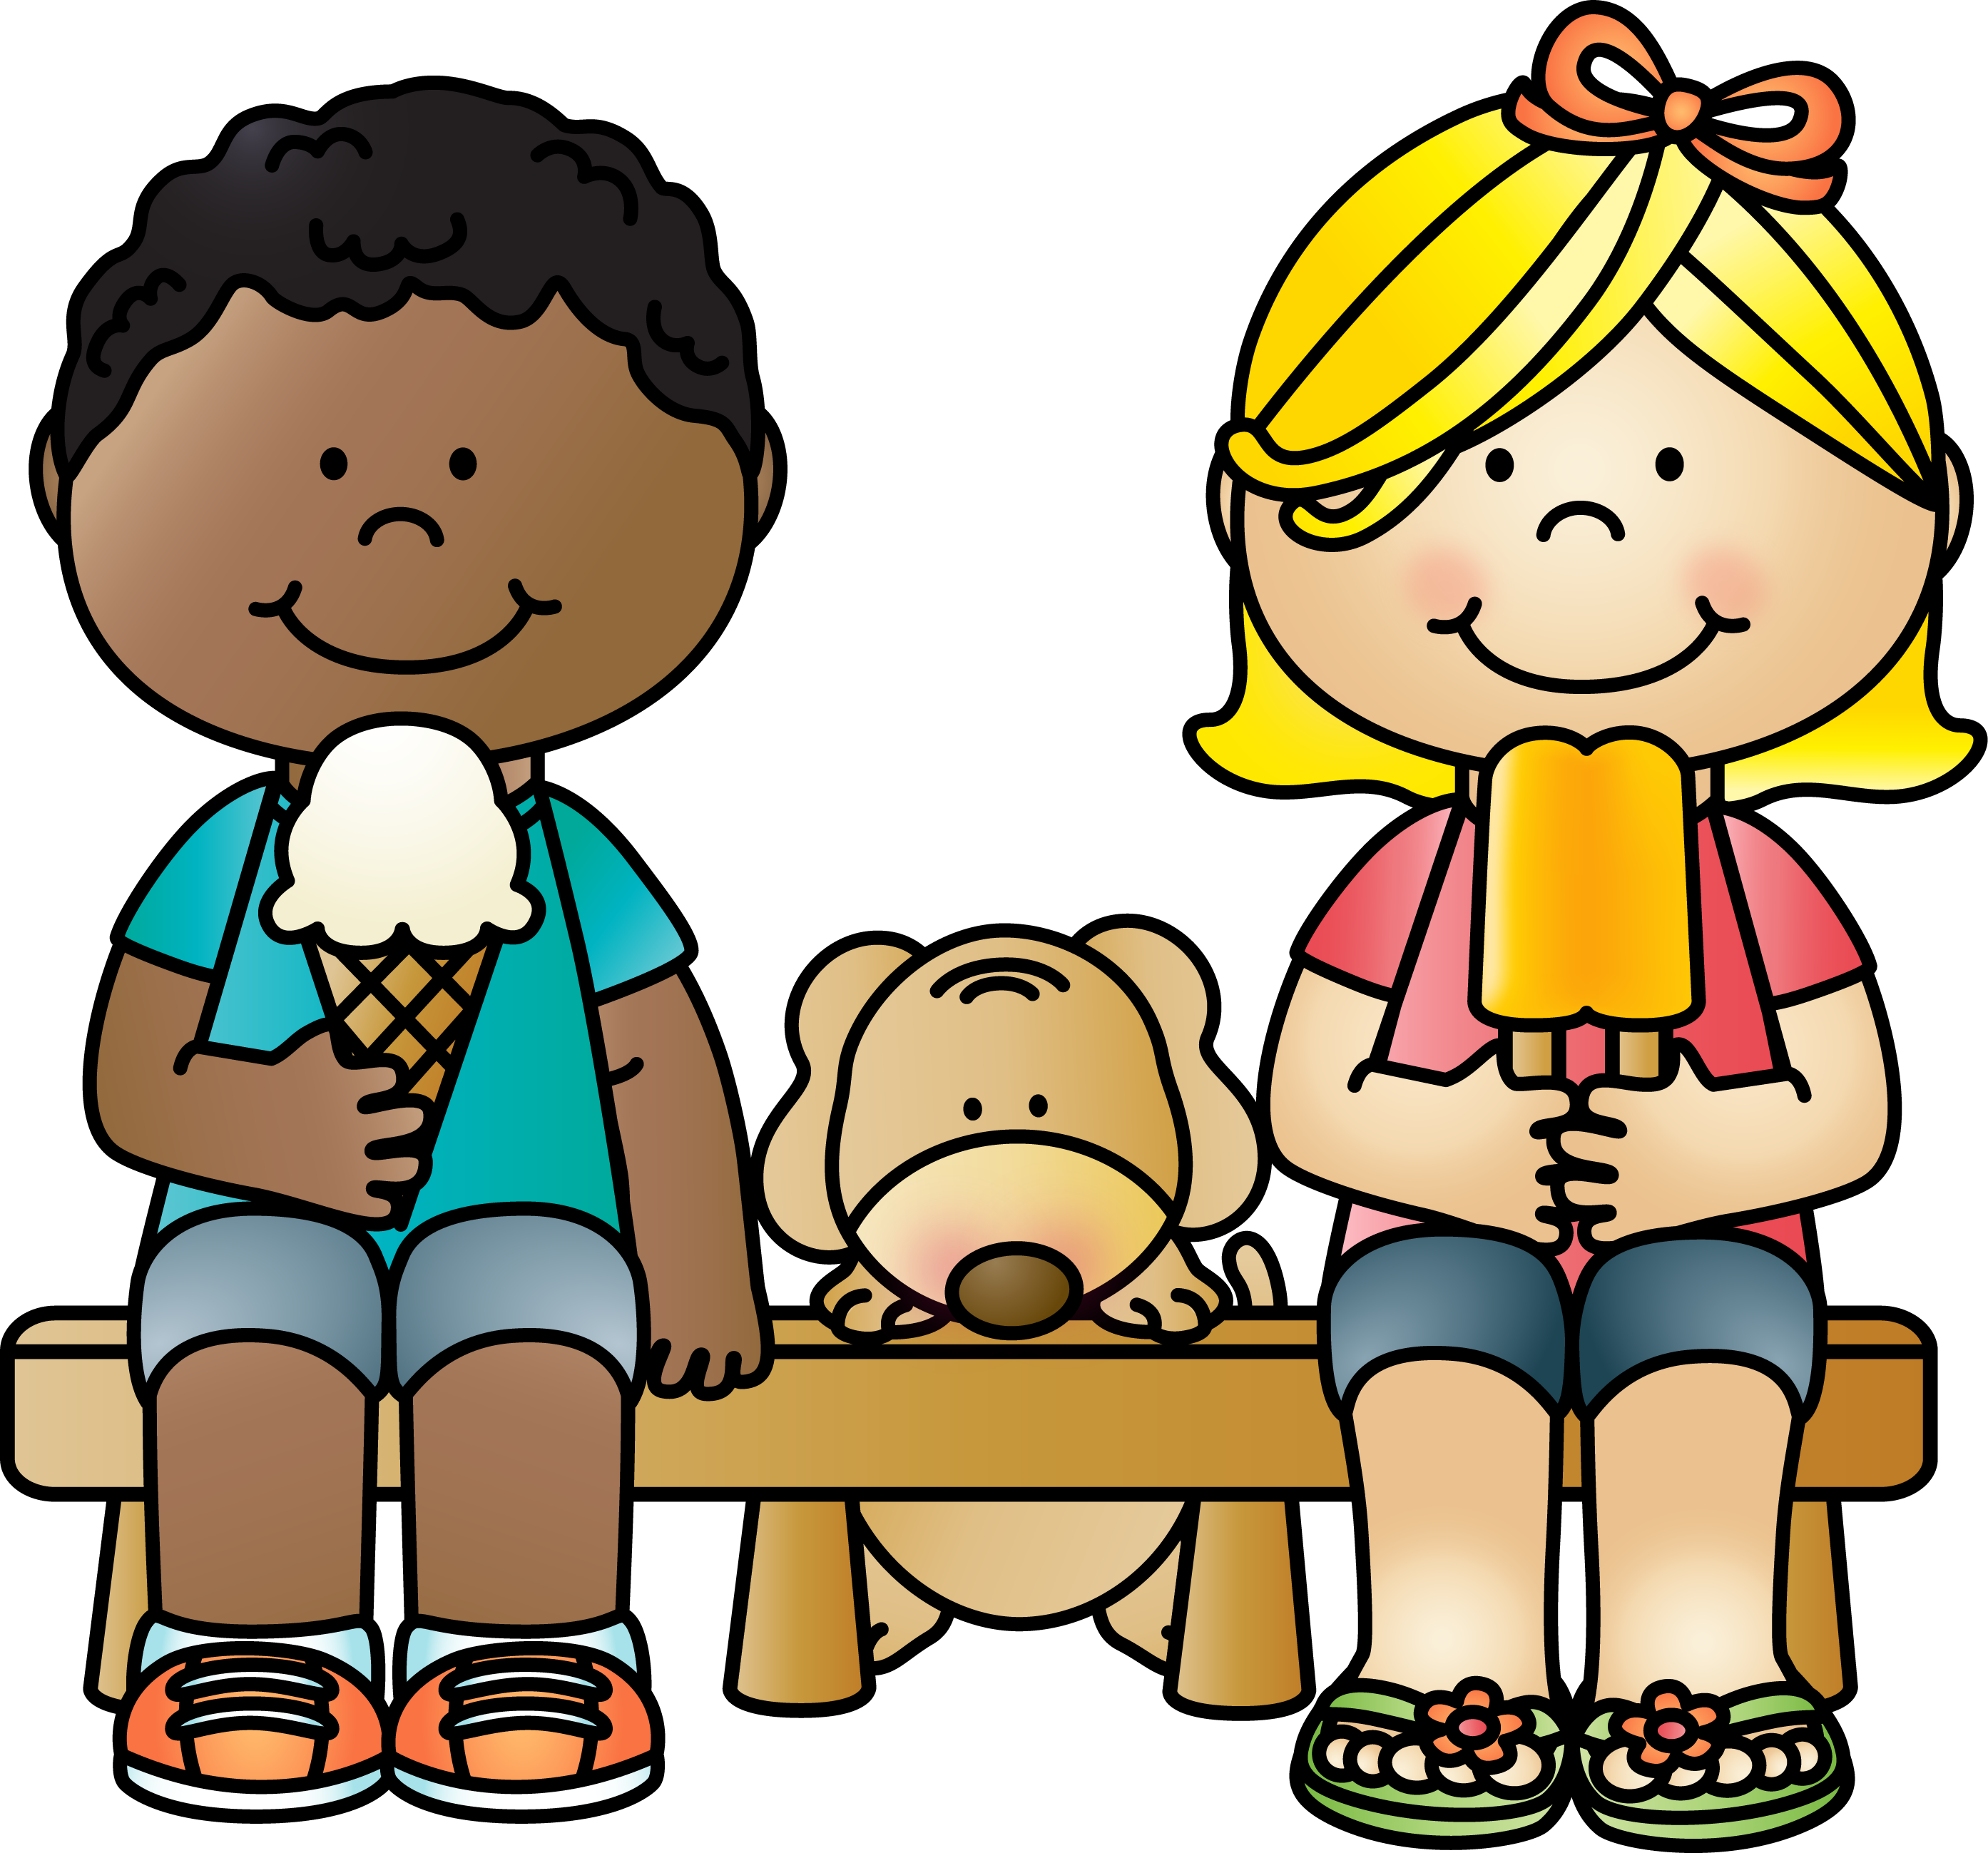 Kids eating ice cream clipart free download Kids eat ice cream clipart images gallery for free download ... free download